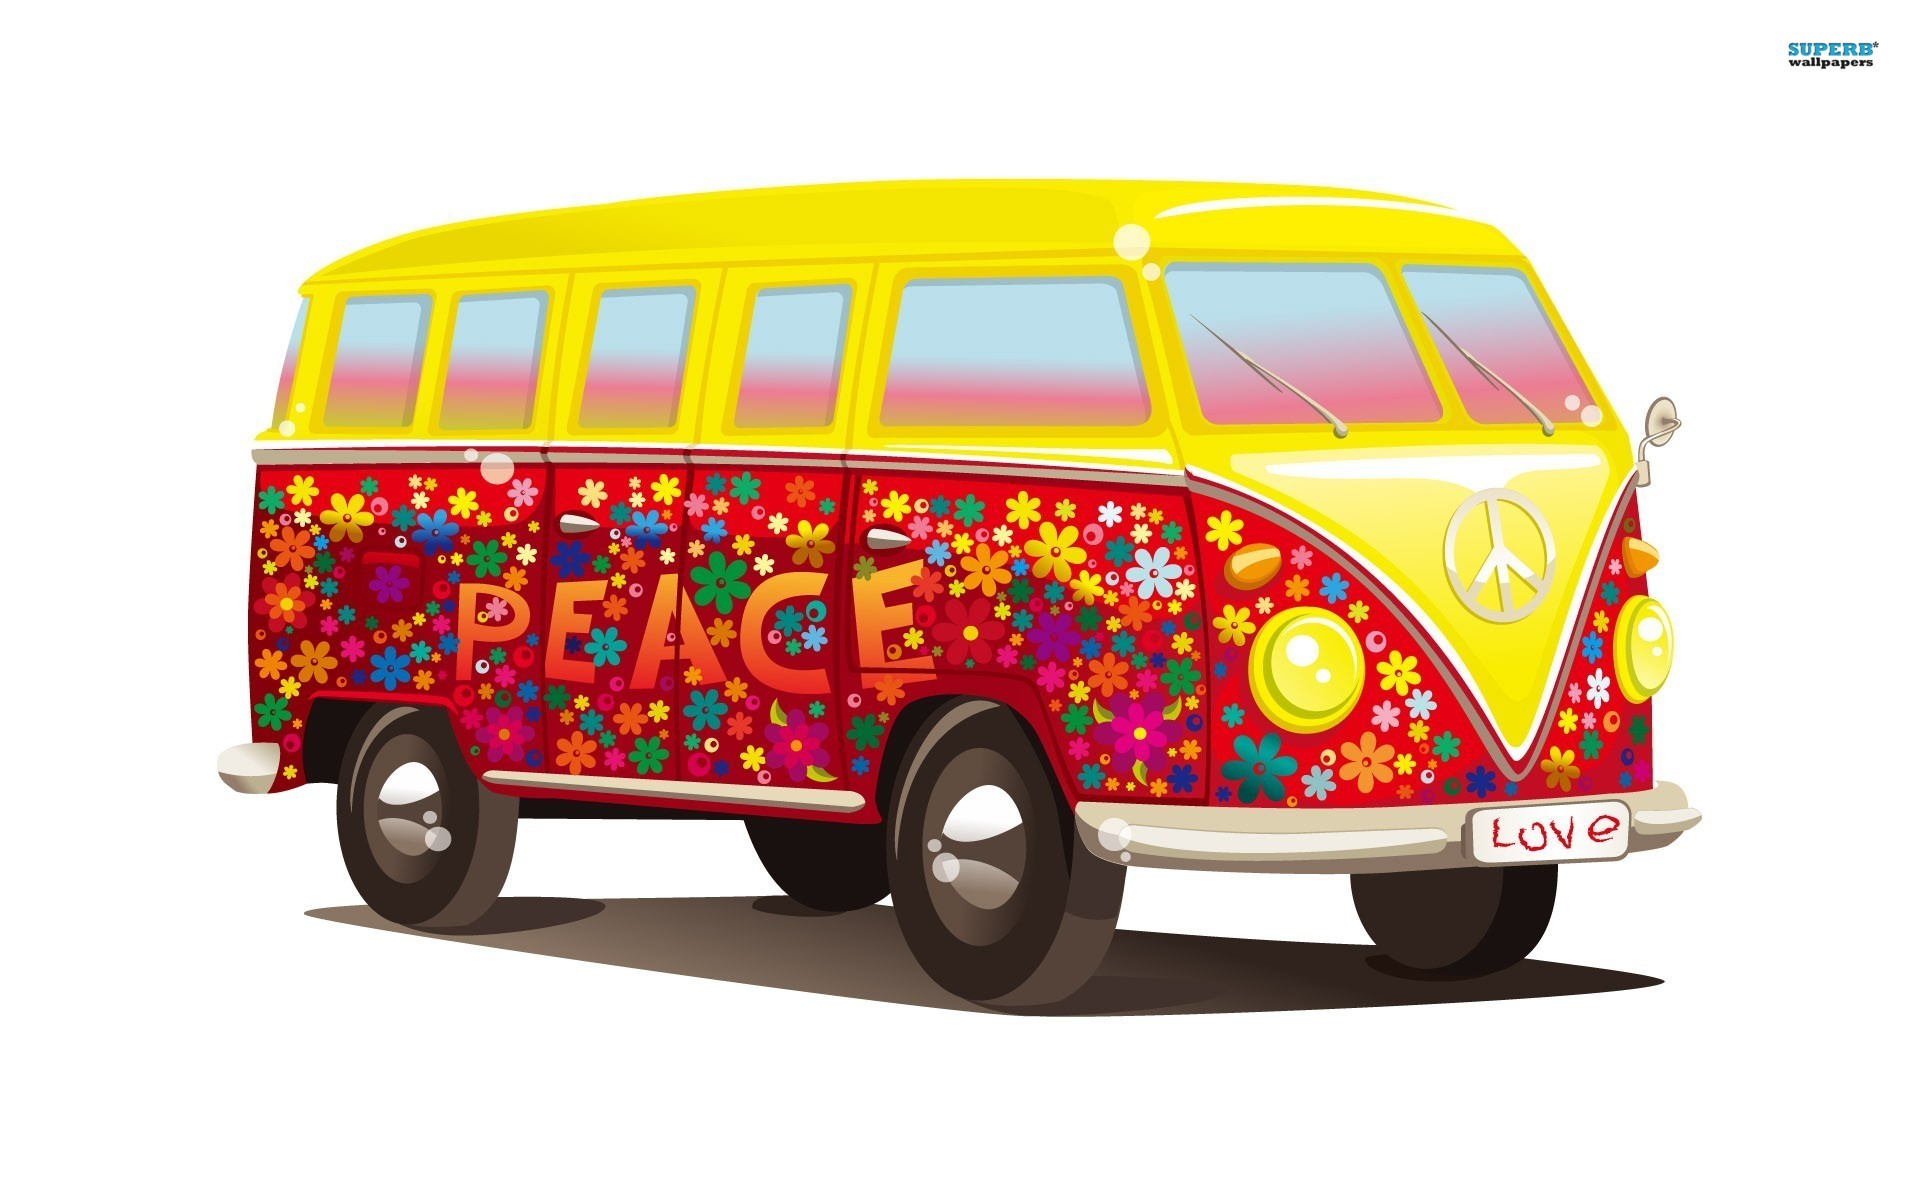 hippie van wallpaper wallpapersafari. Black Bedroom Furniture Sets. Home Design Ideas